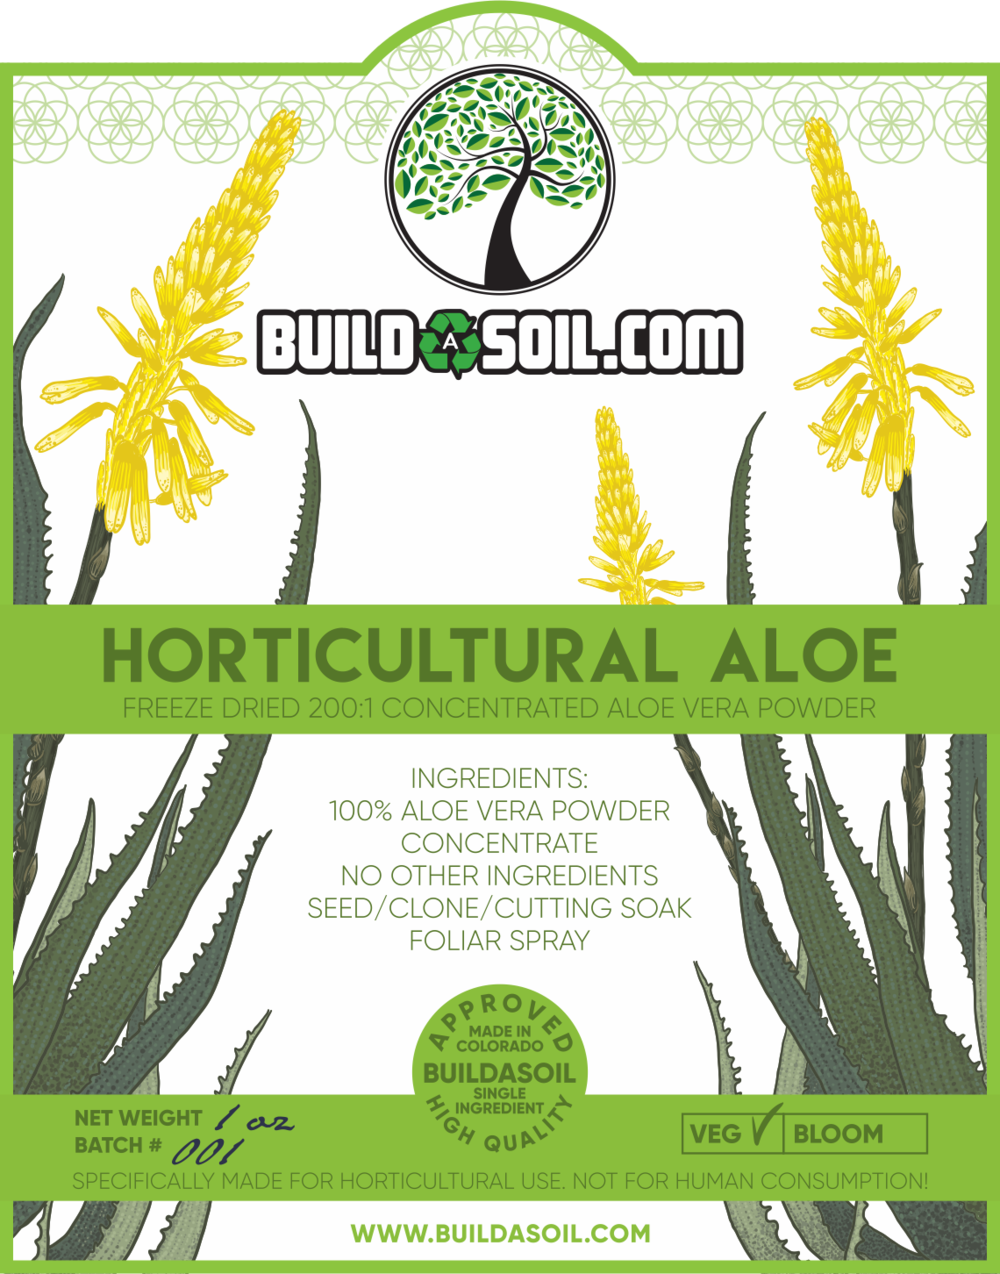 horticultural aloe.png